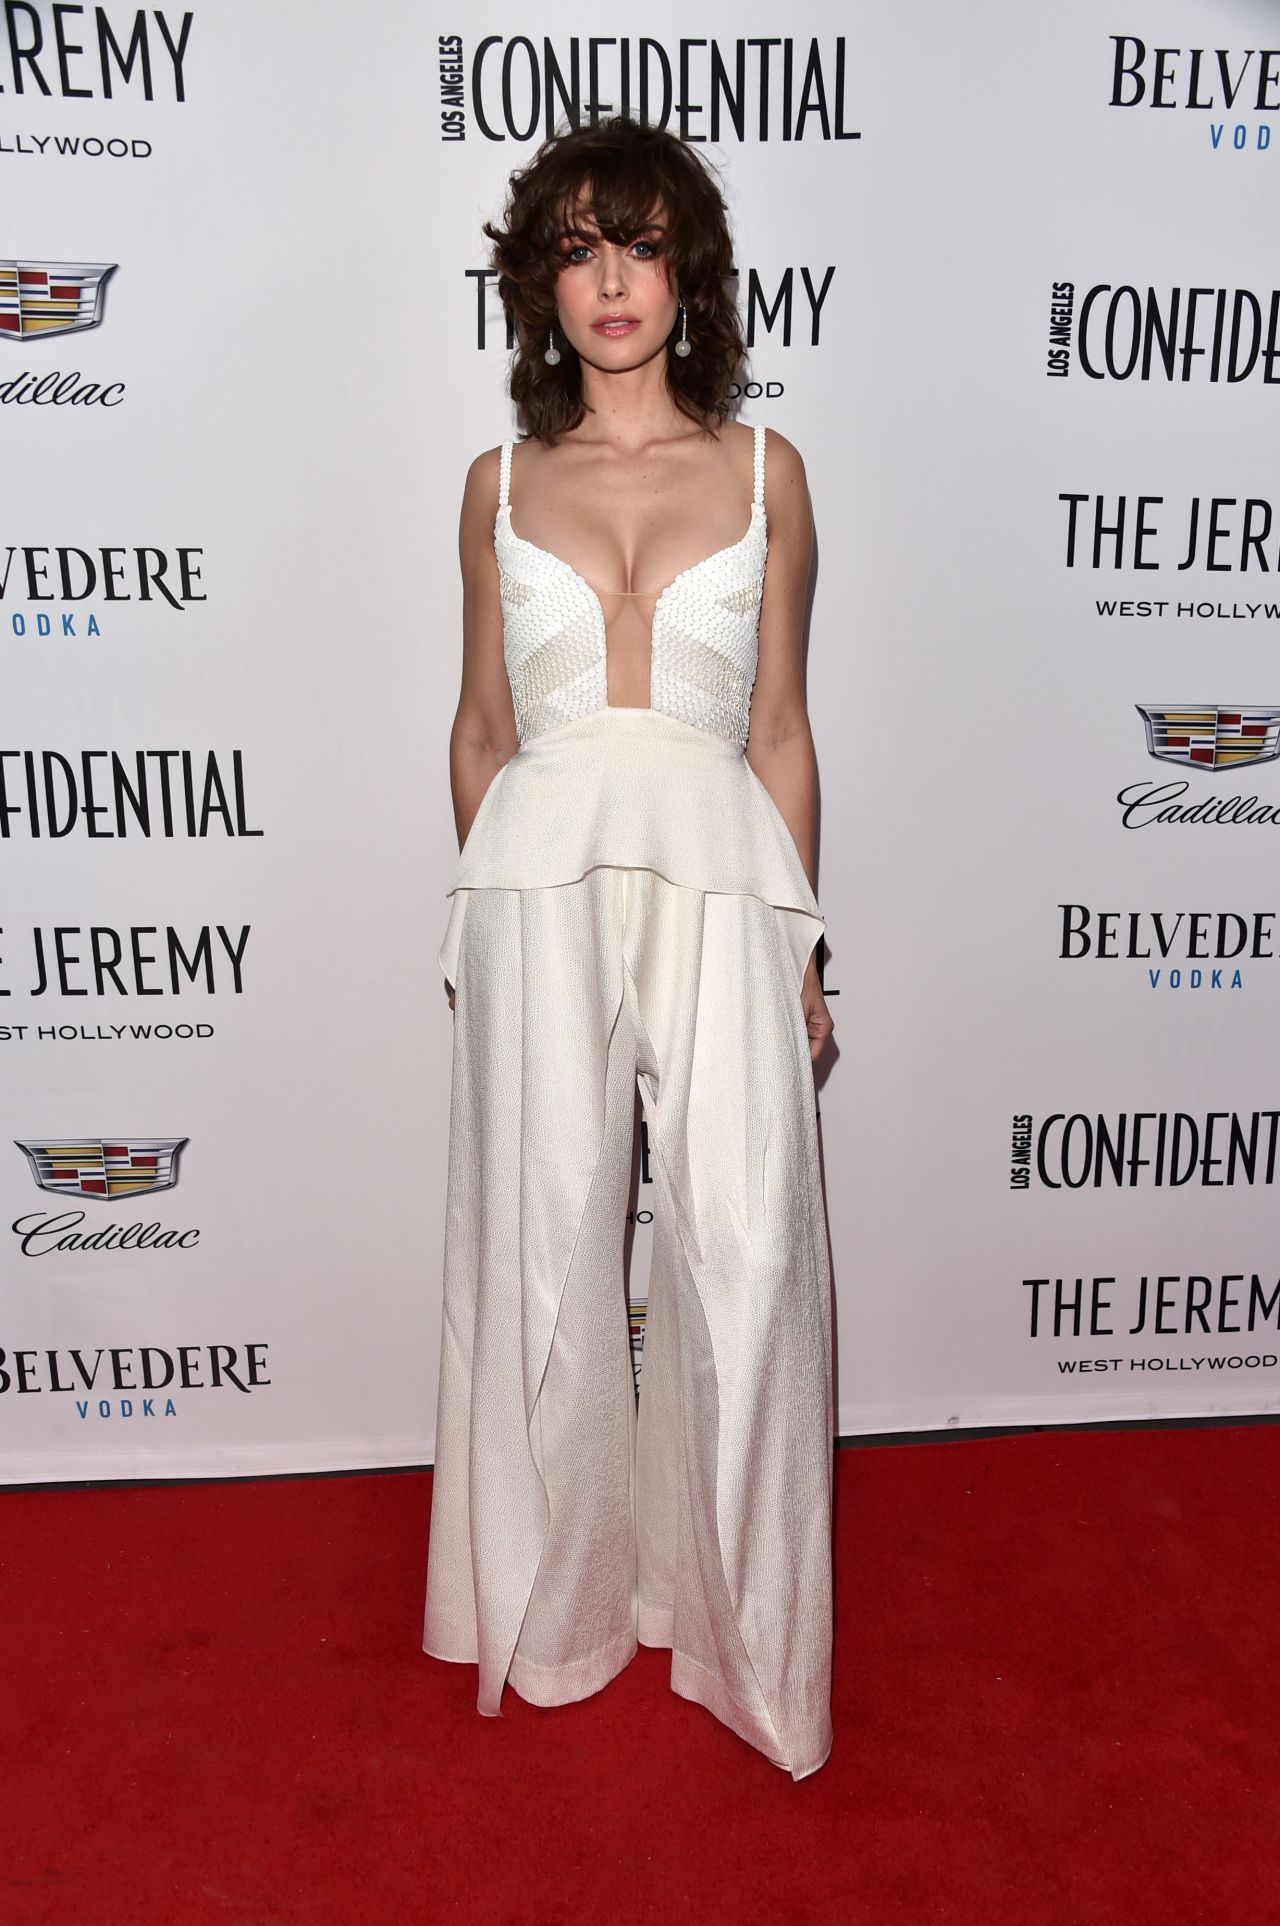 http://celebmafia.com/wp-content/uploads/2018/01/alison-brie-los-angeles-confidential-celebrates-awards-issue-9.jpg